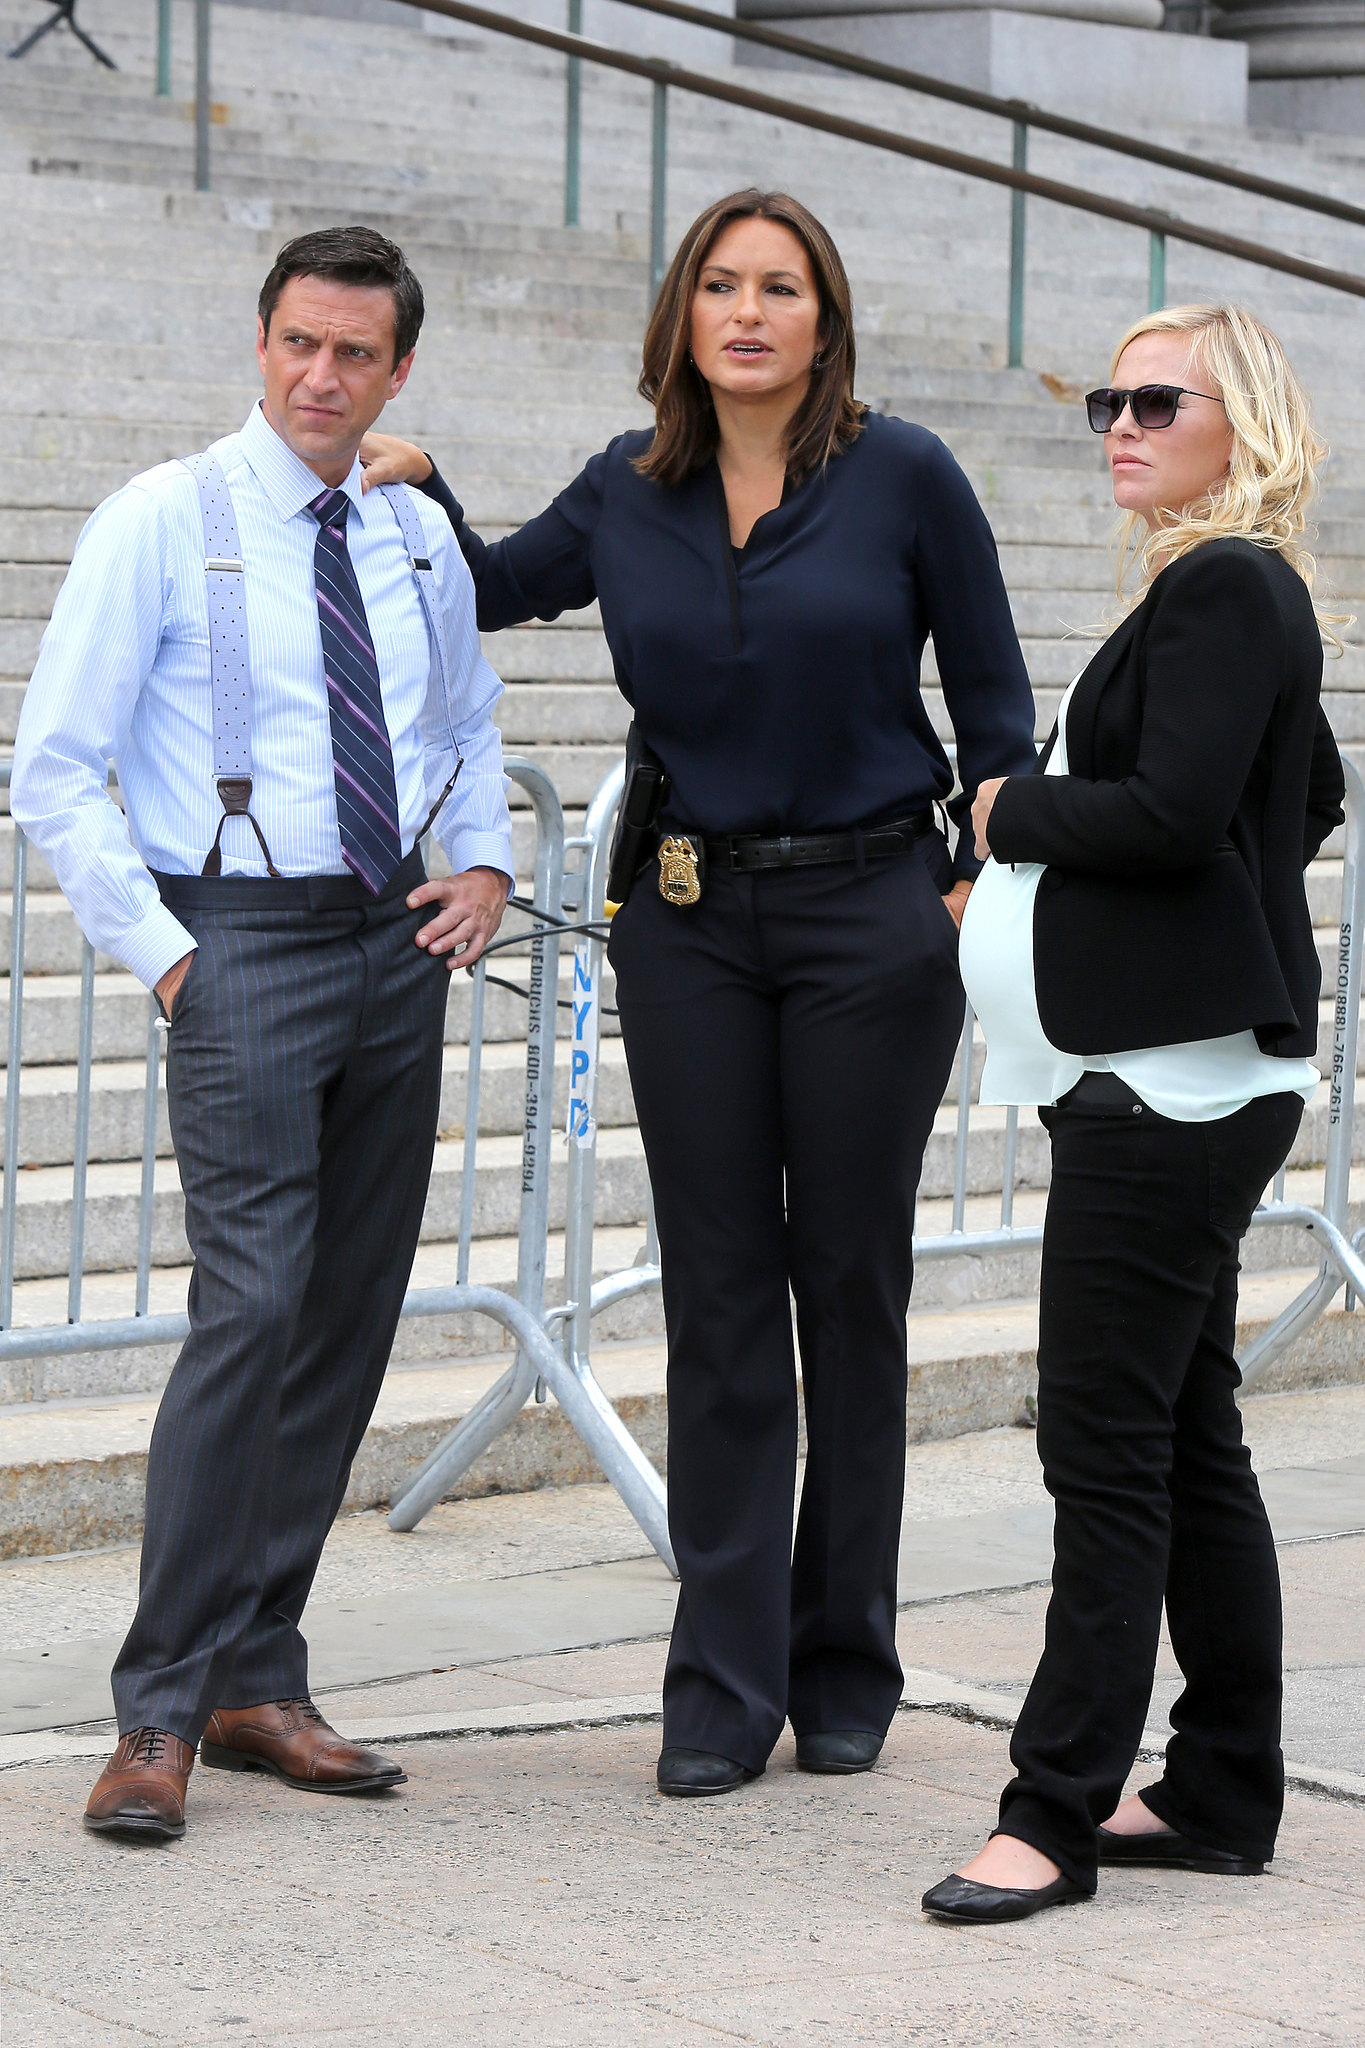 Back to post mariska hargitay at law and order set in ny - Uk Clients Must Credit Akm Gsi Only New York Ny Mariska Hargitay And Cast On The Set Of Law Order Special Victims Unit Pictured Mariska Hargitay